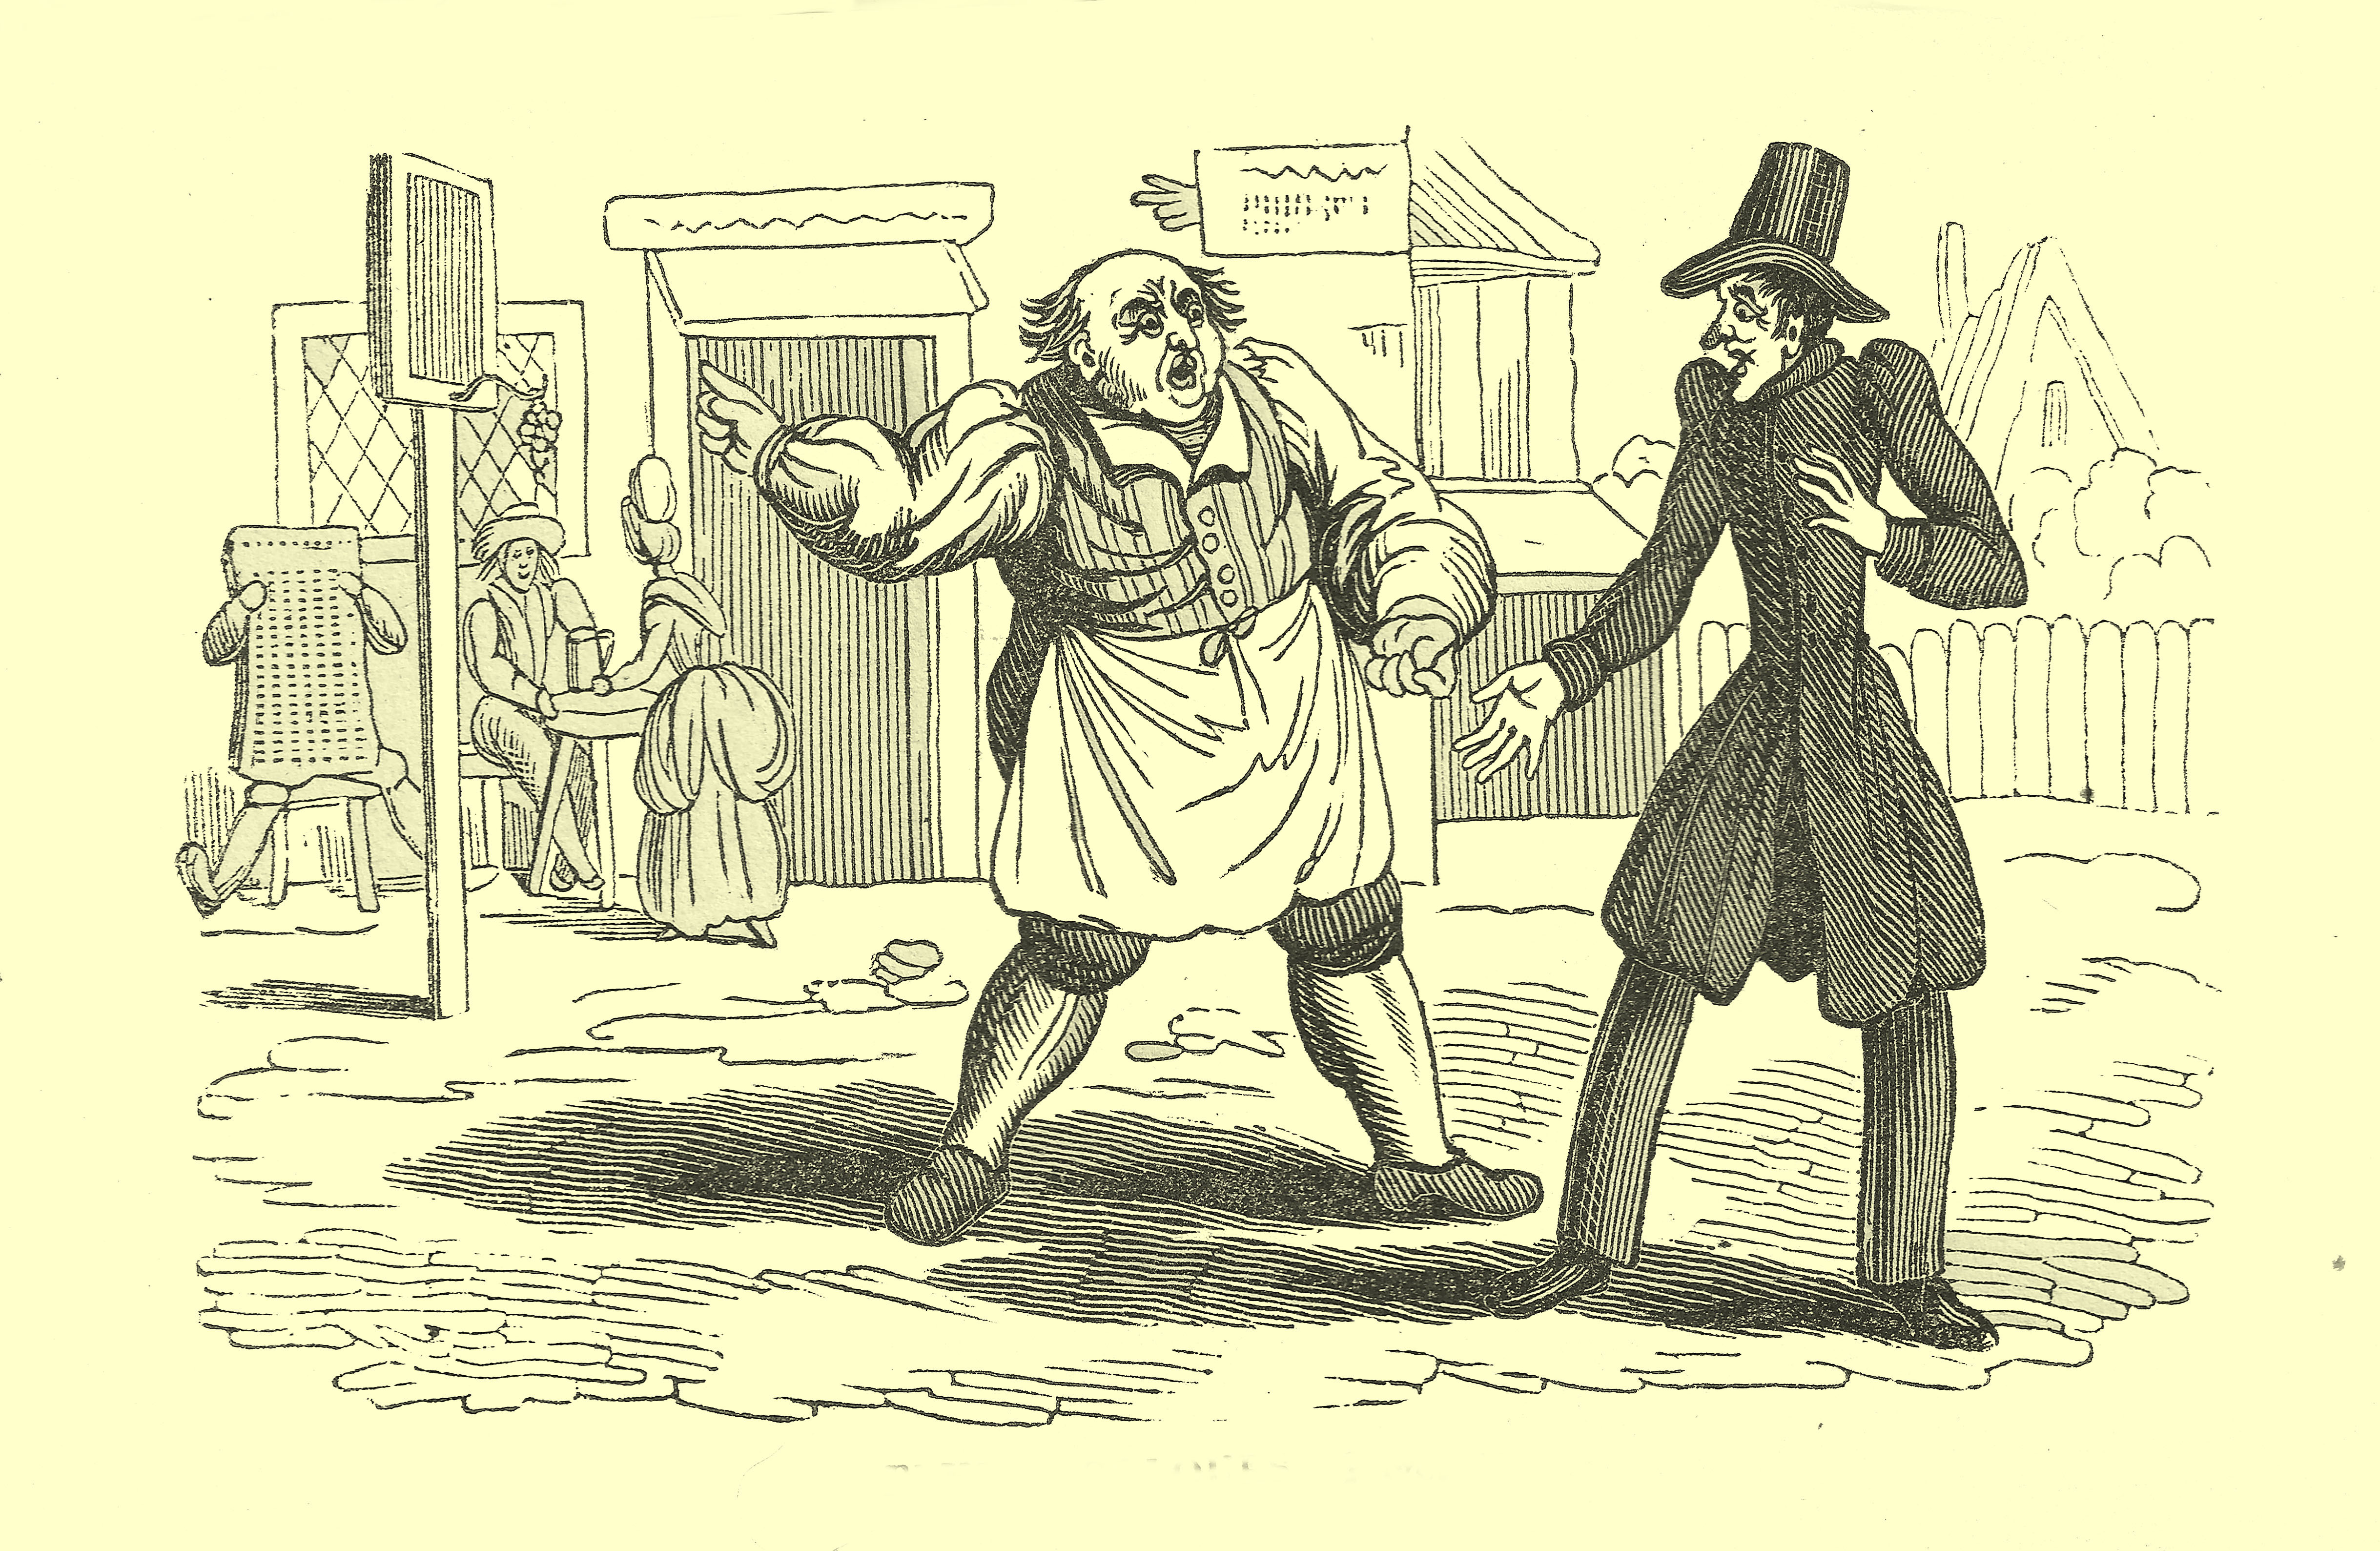 Comic engraving of a city street in the middle of which is a fat tavern keeper, with an apron, talking to a thin, tall man, dressed in a black frockcoat and tophat.